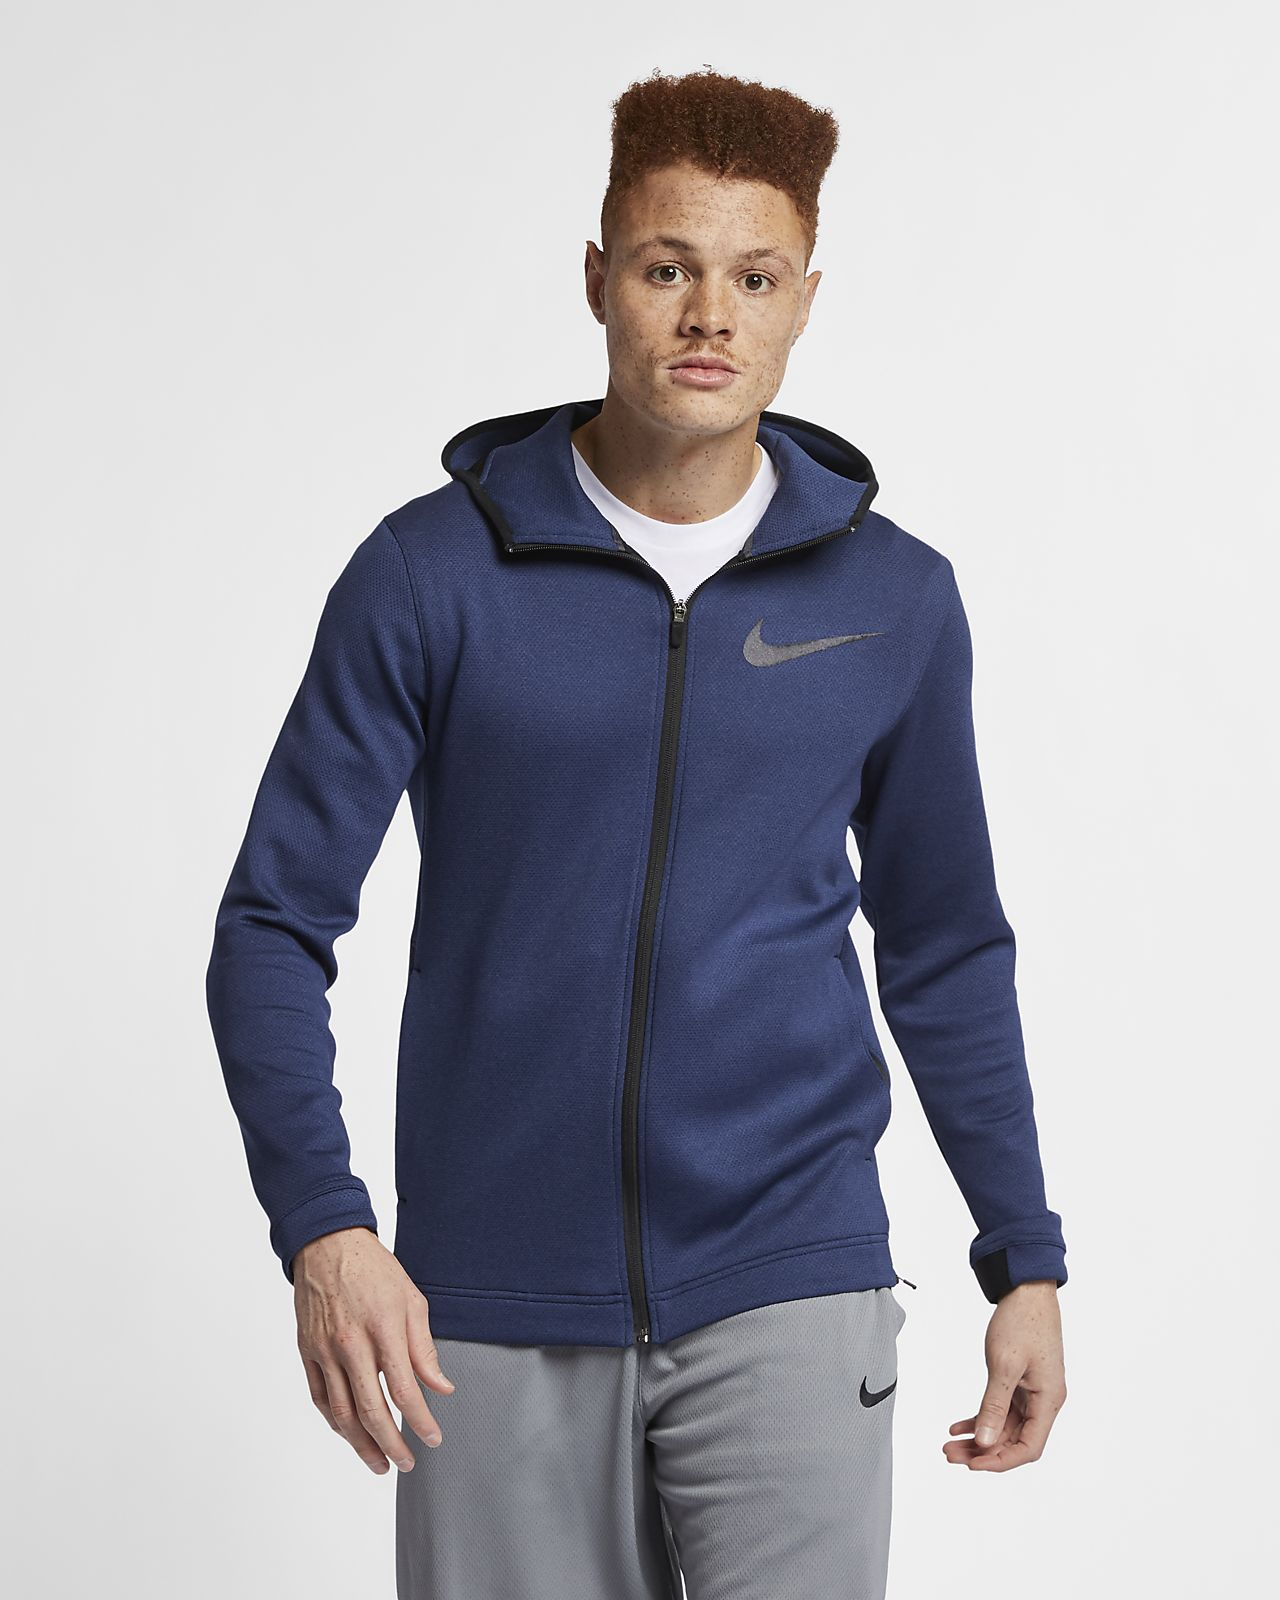 dc85b1379a84 Nike Therma Flex Showtime Men s Full-Zip Basketball Hoodie. Nike.com